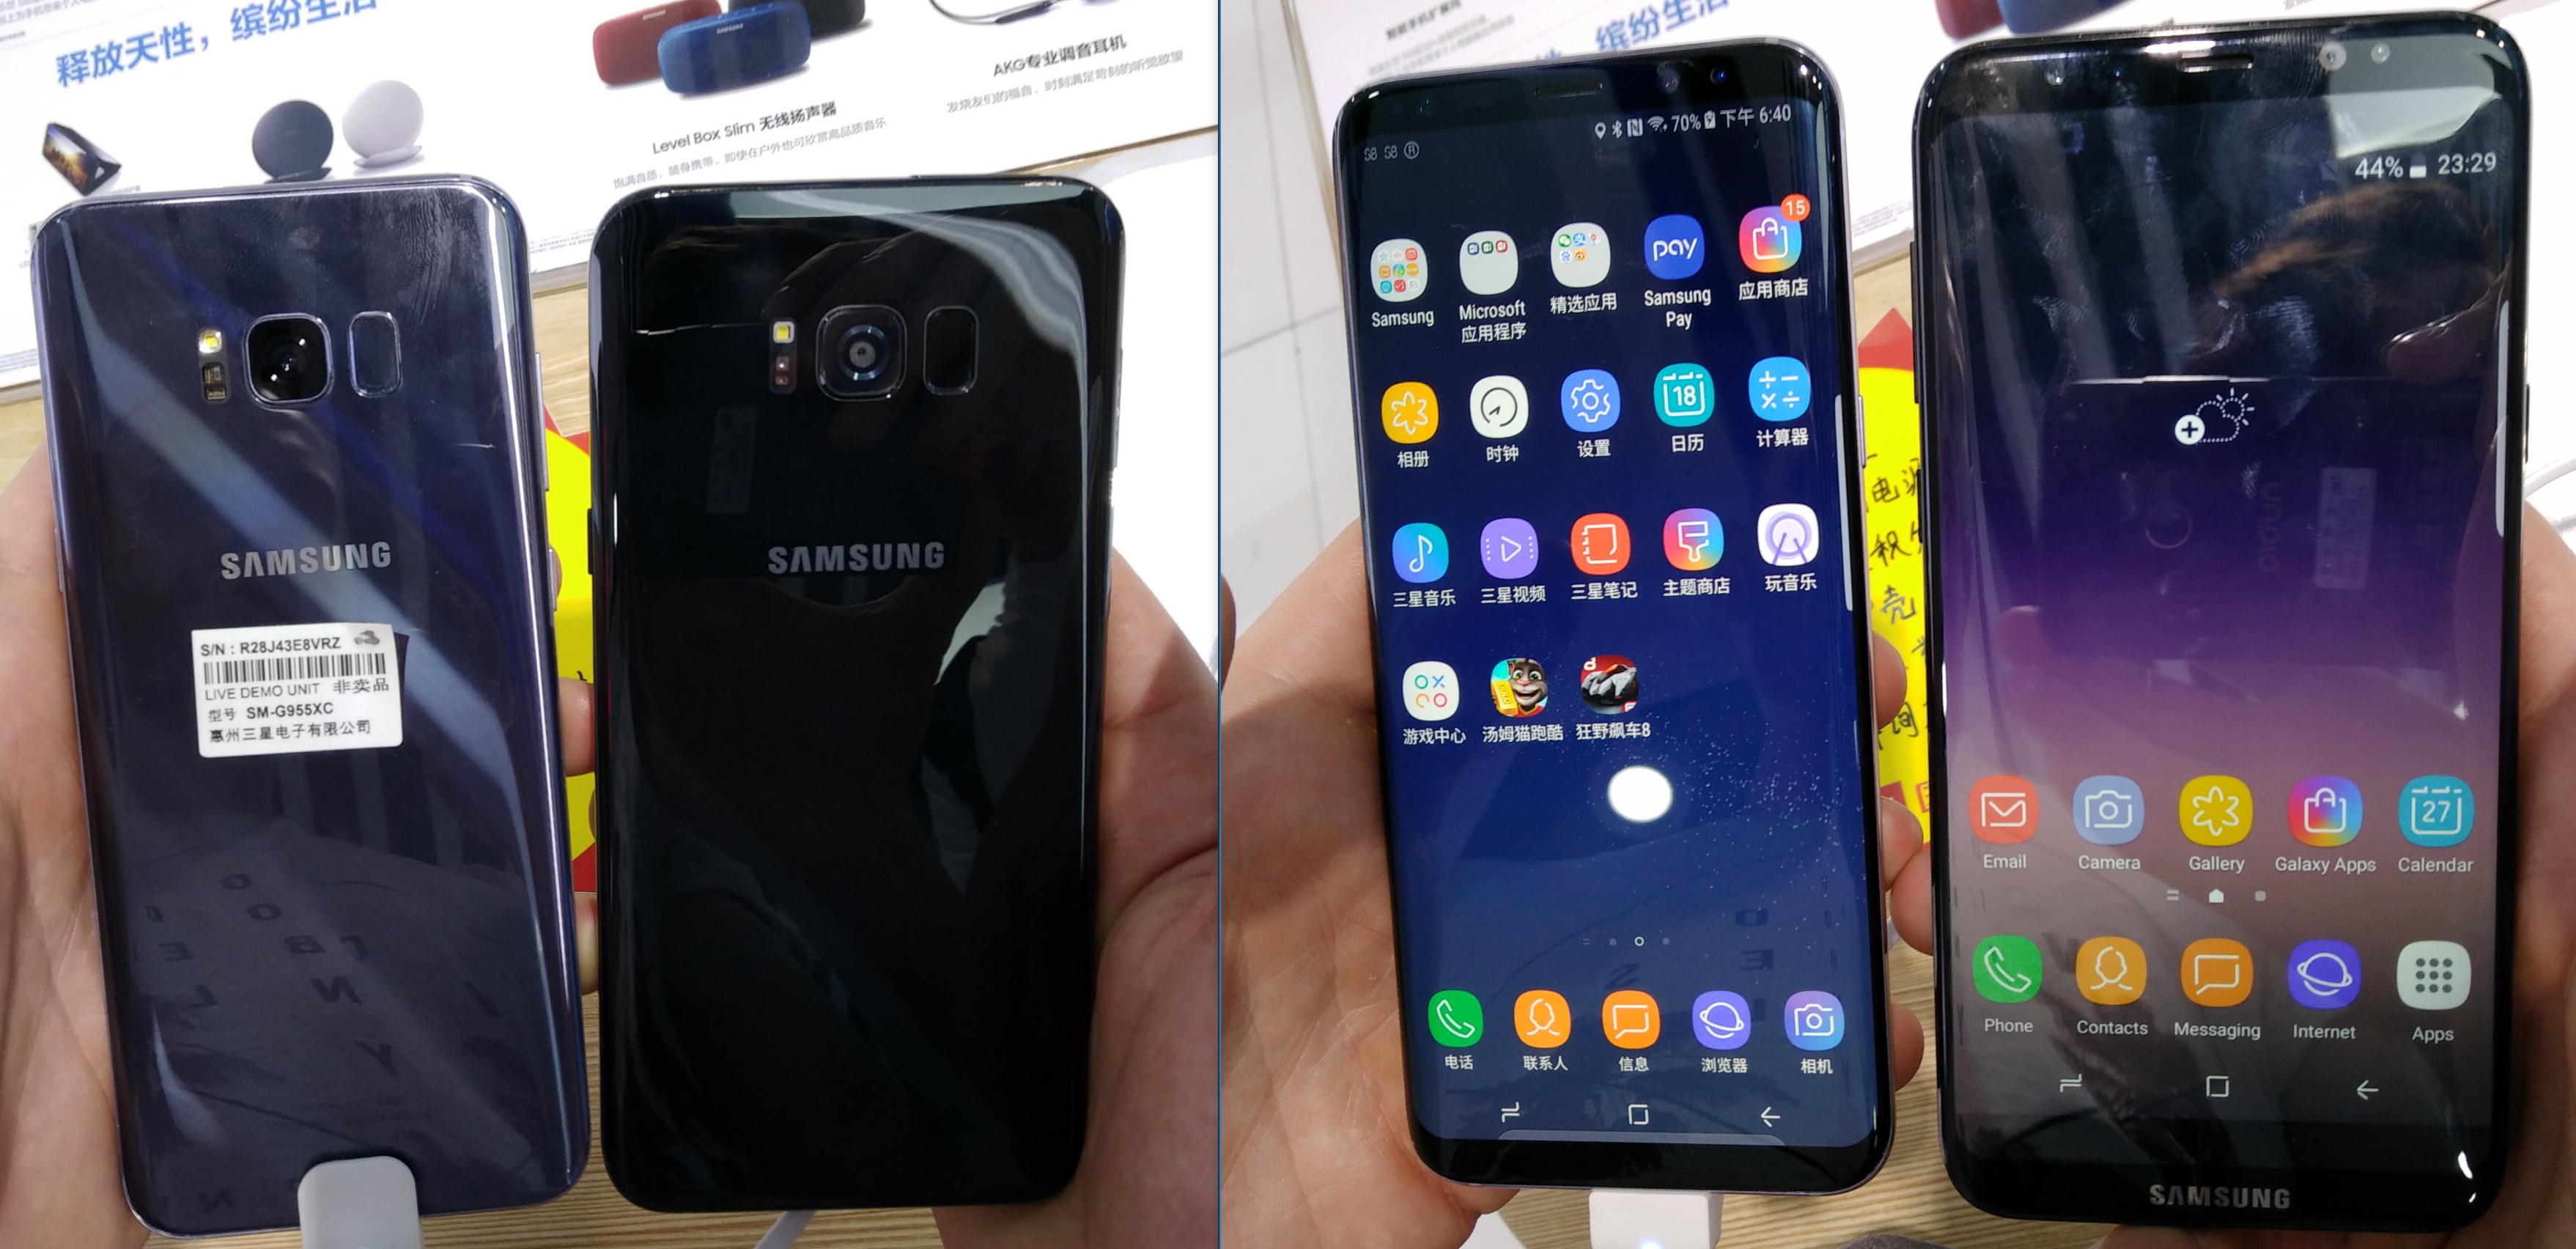 Galaxy S8 Clone vs. Original